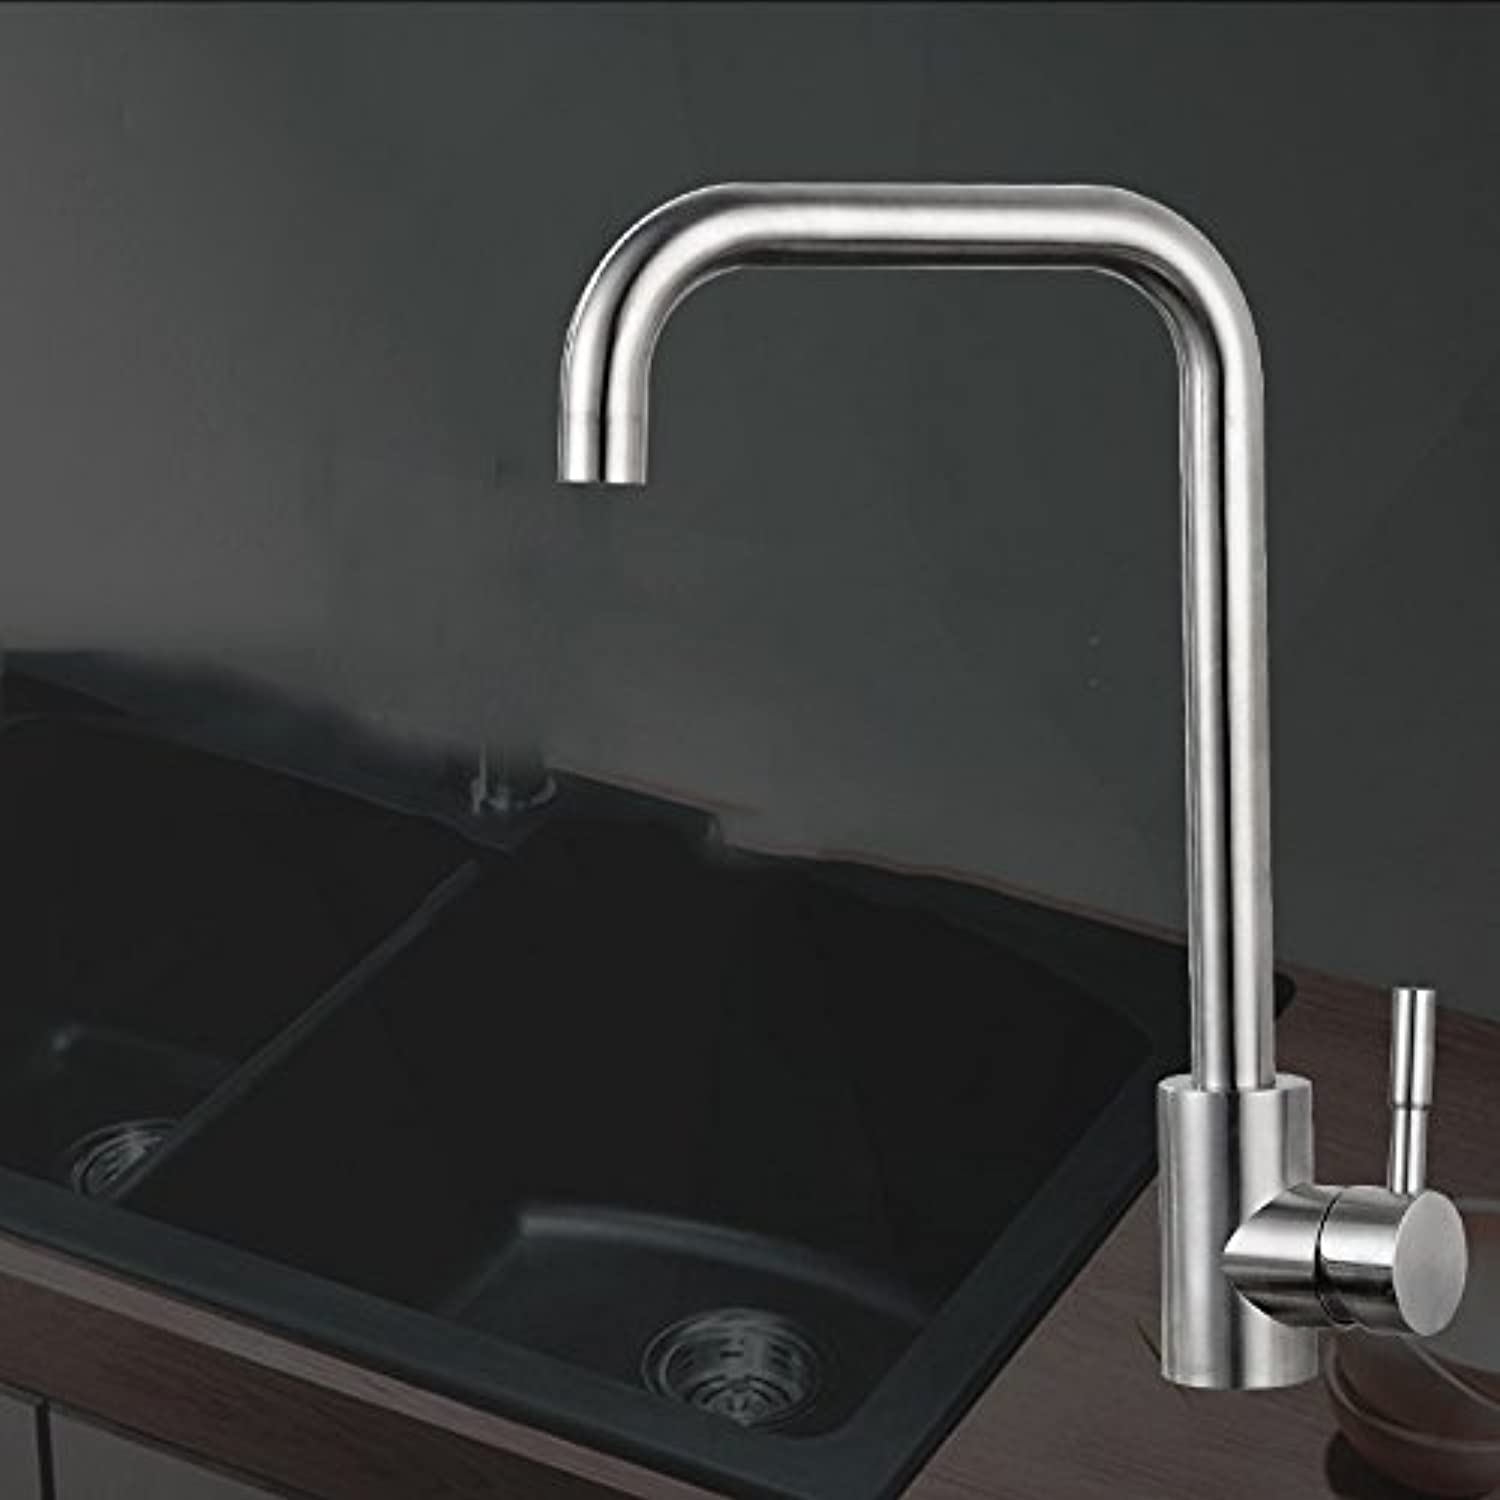 Hlluya Professional Sink Mixer Tap Kitchen Faucet Single hole cold-hot water tap to redate,F